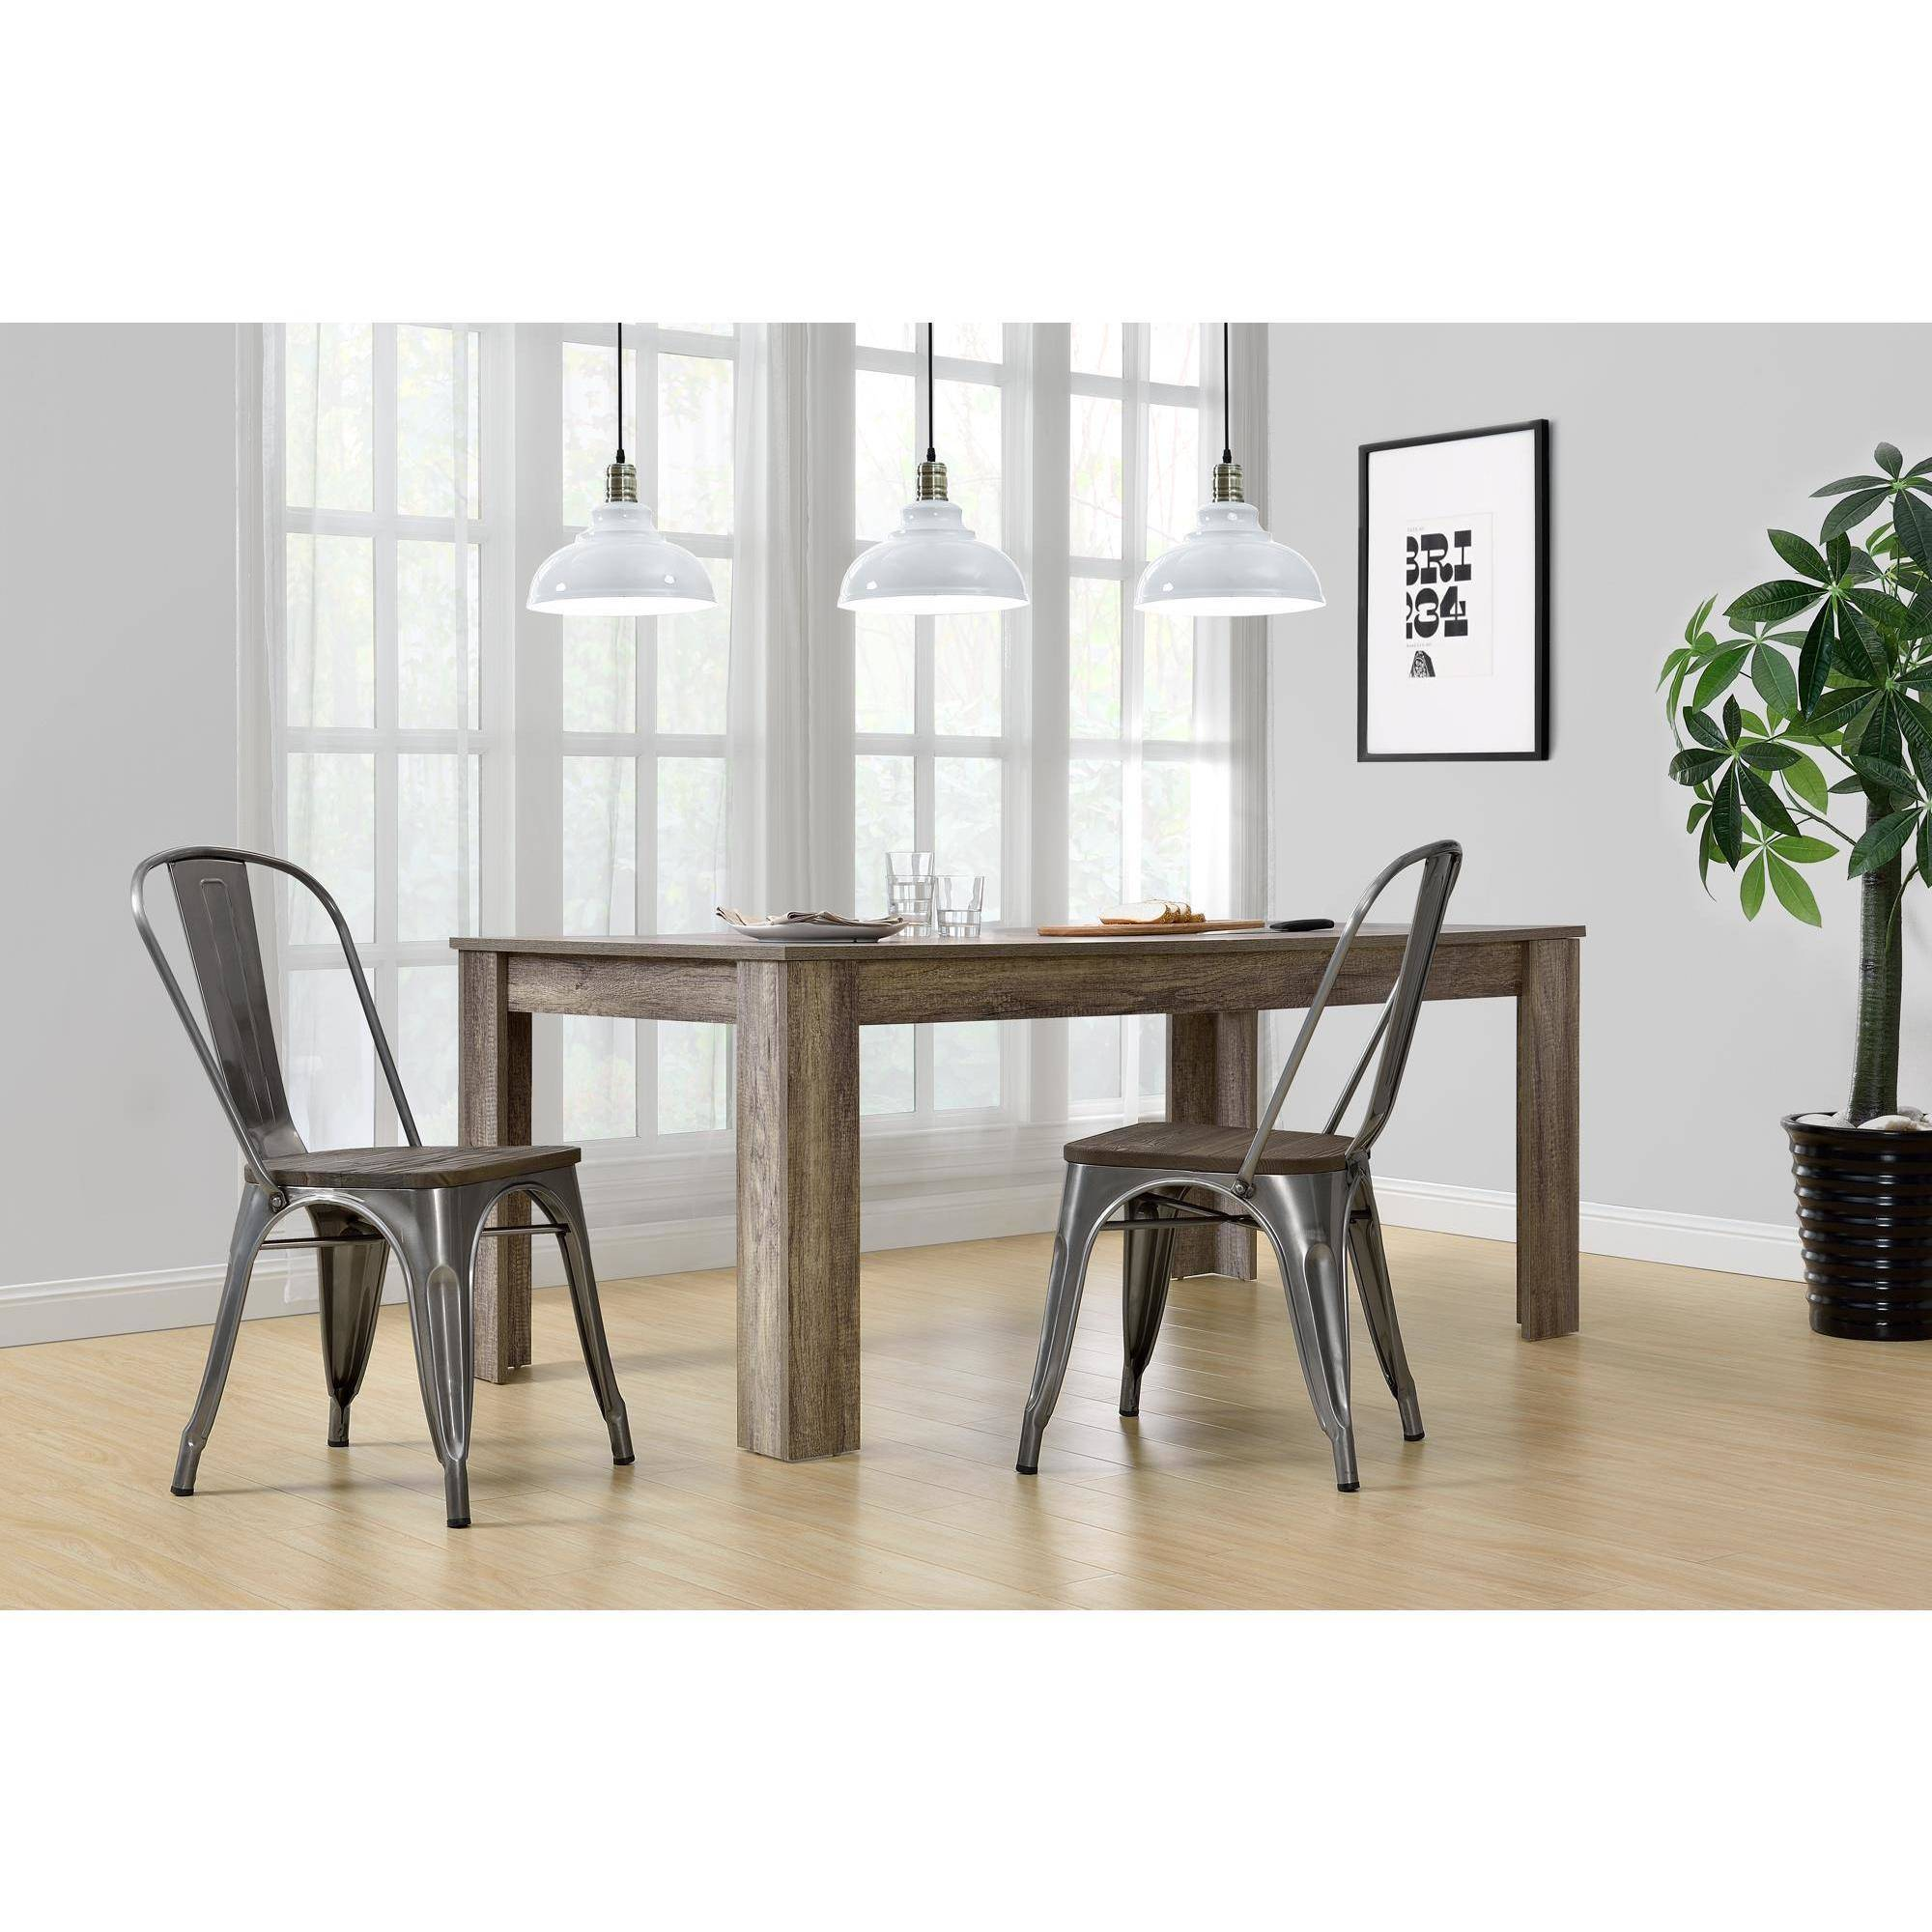 Dorel Home Products Fusion Metal Dining Chair With Wood Seat, Set Of 2,  Multiple Colors   Walmart.com